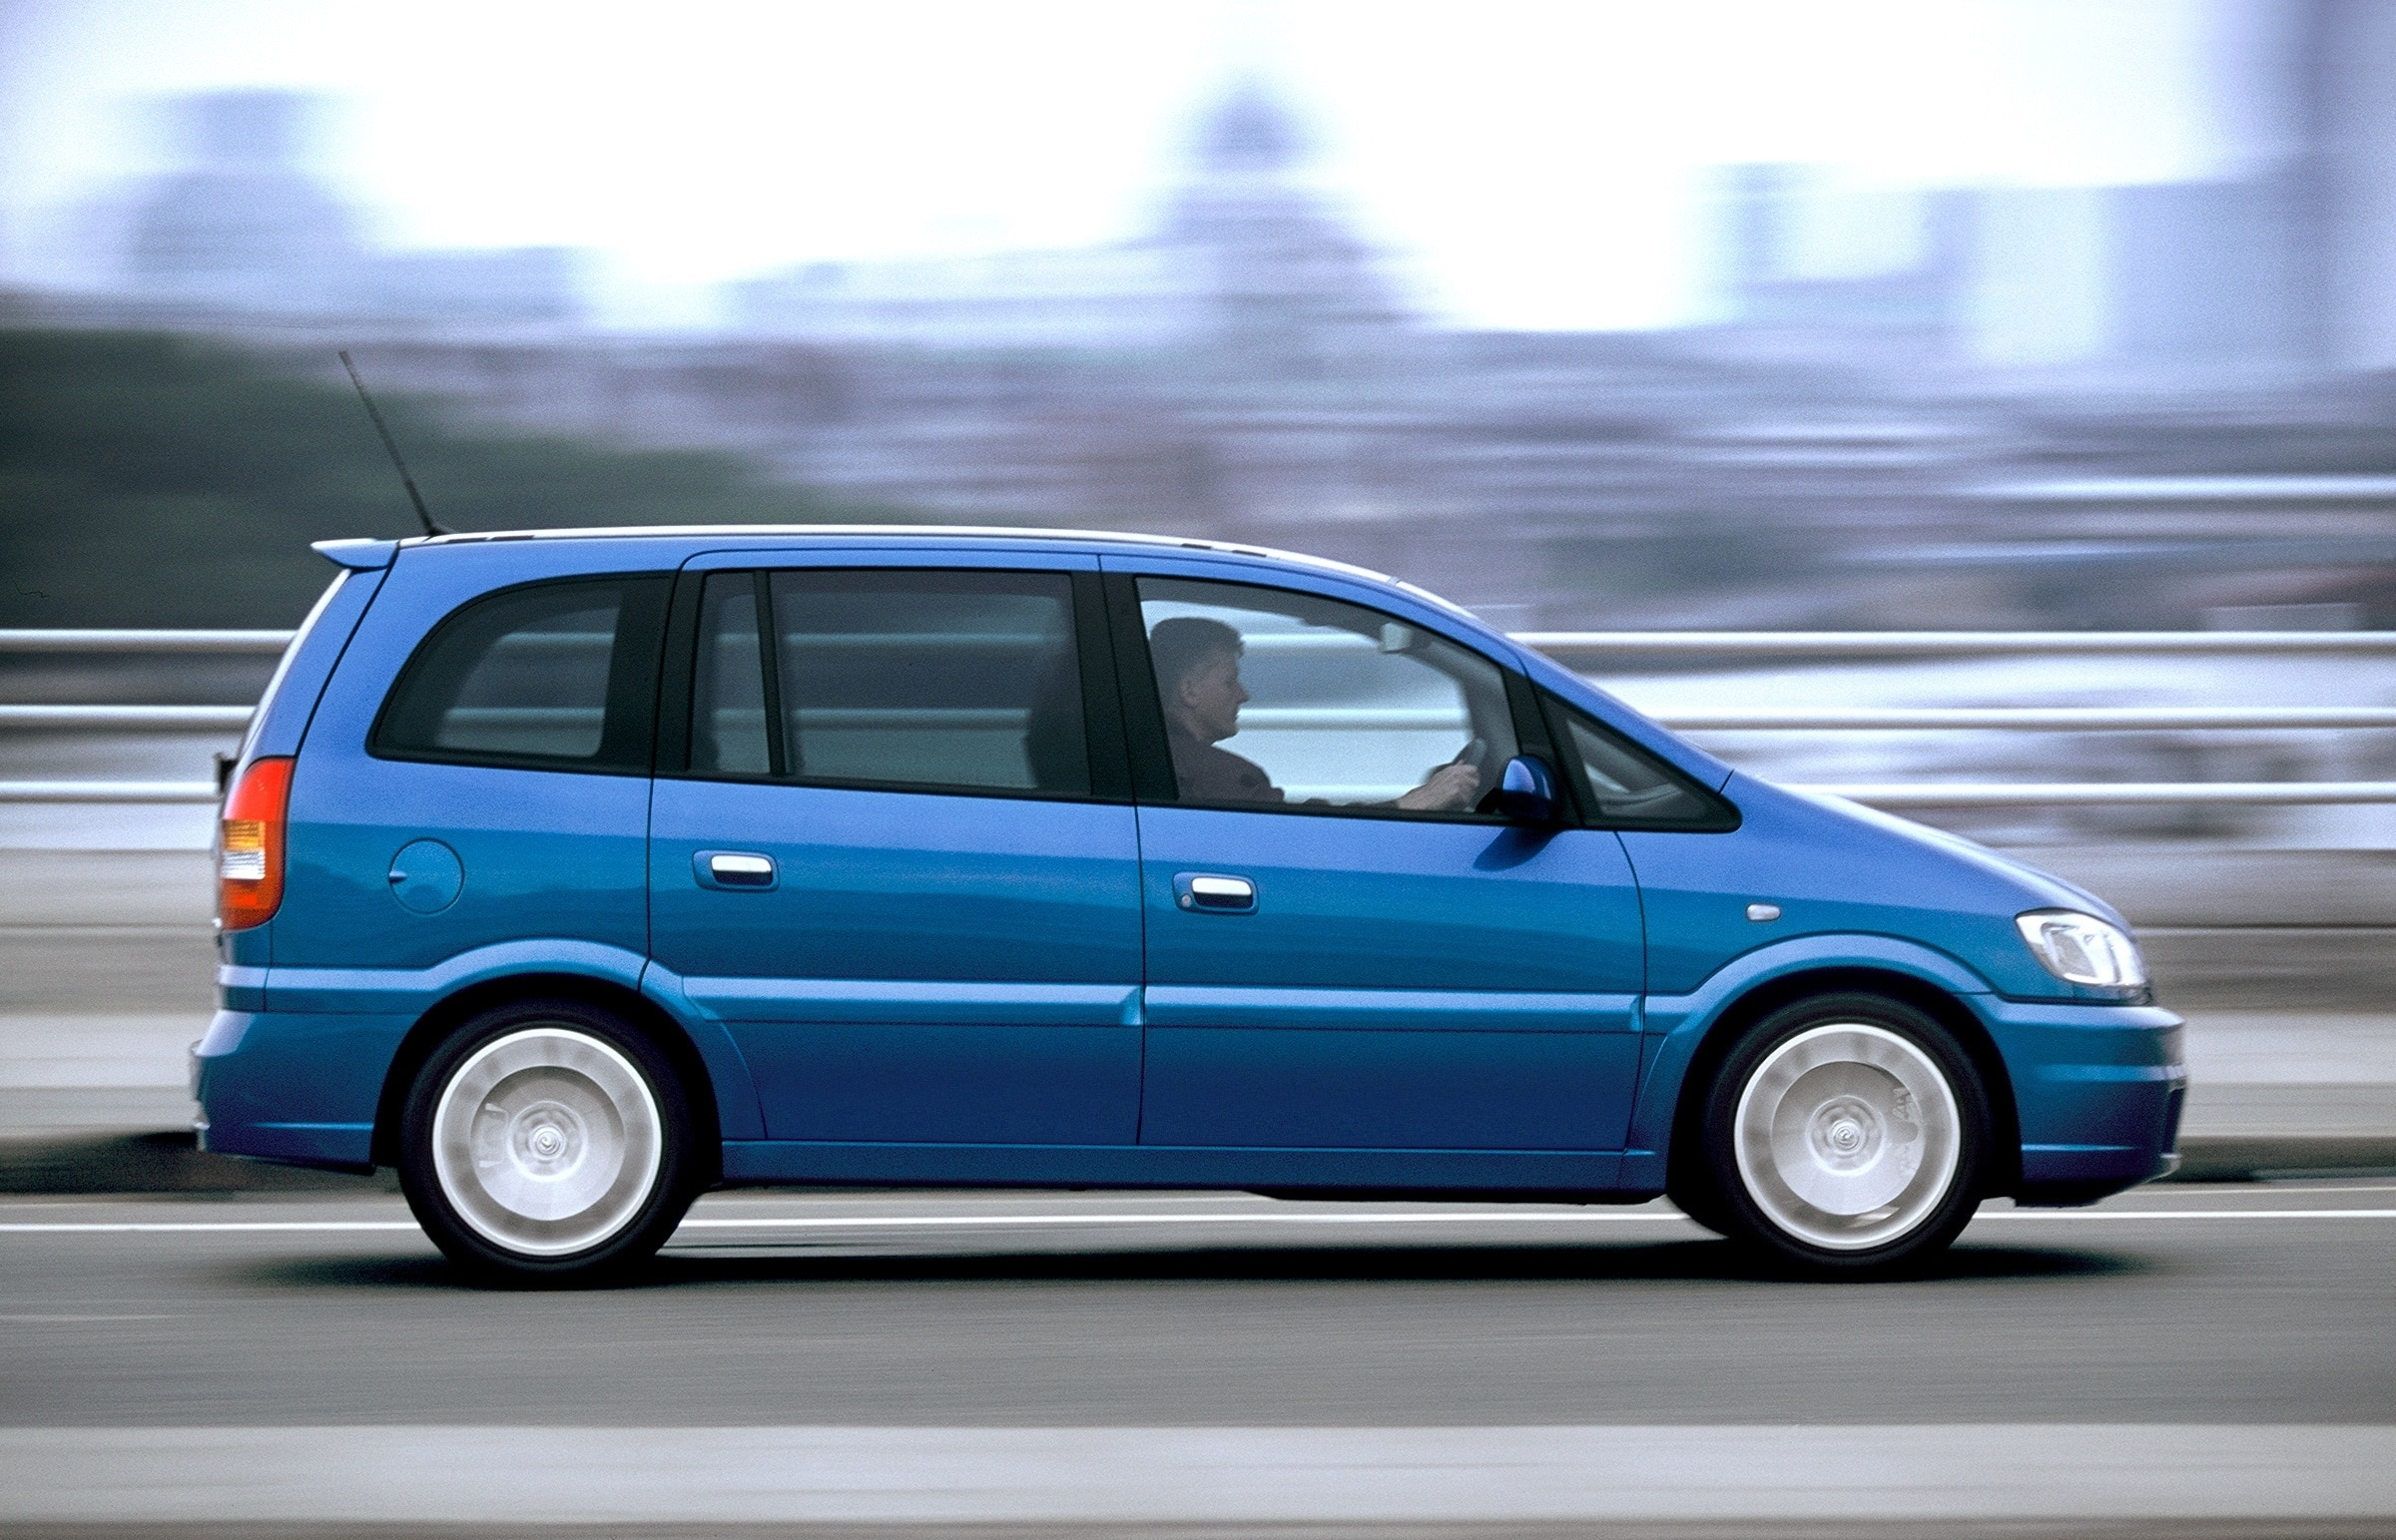 Zafira - Yeah, the family car with all the seats. And in this case ...